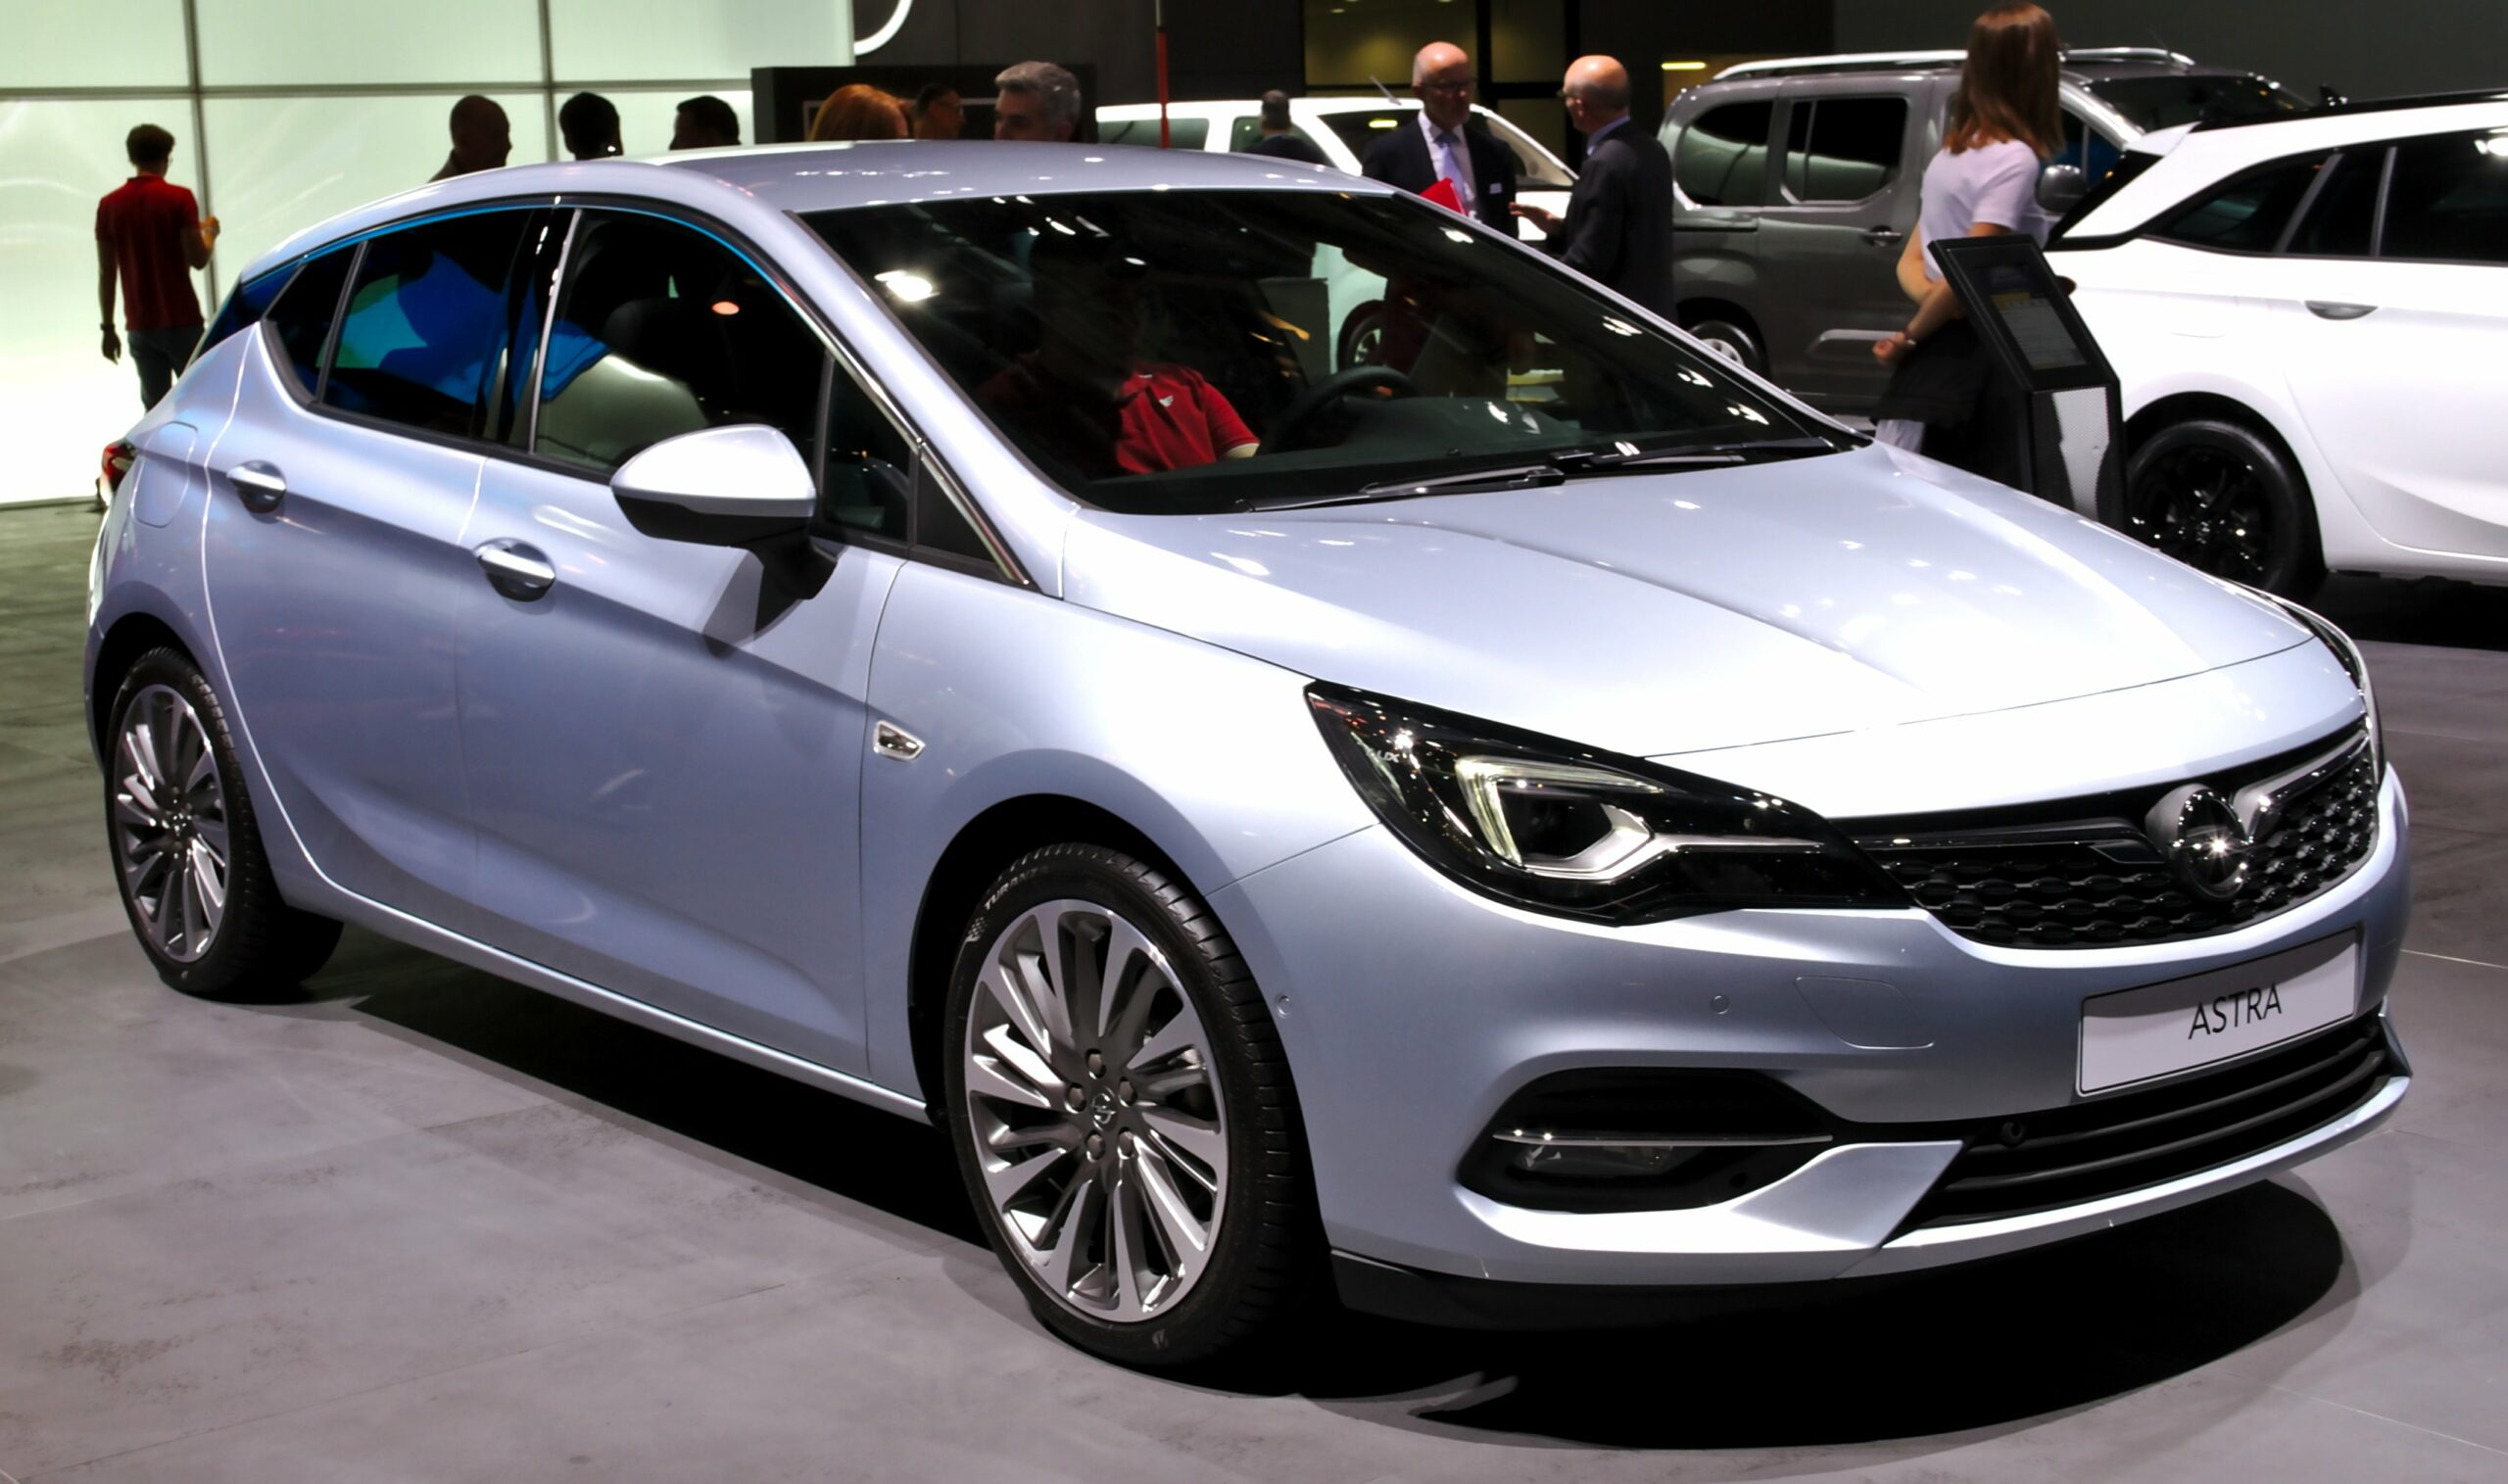 opel big event 2020 Redesign and Concept